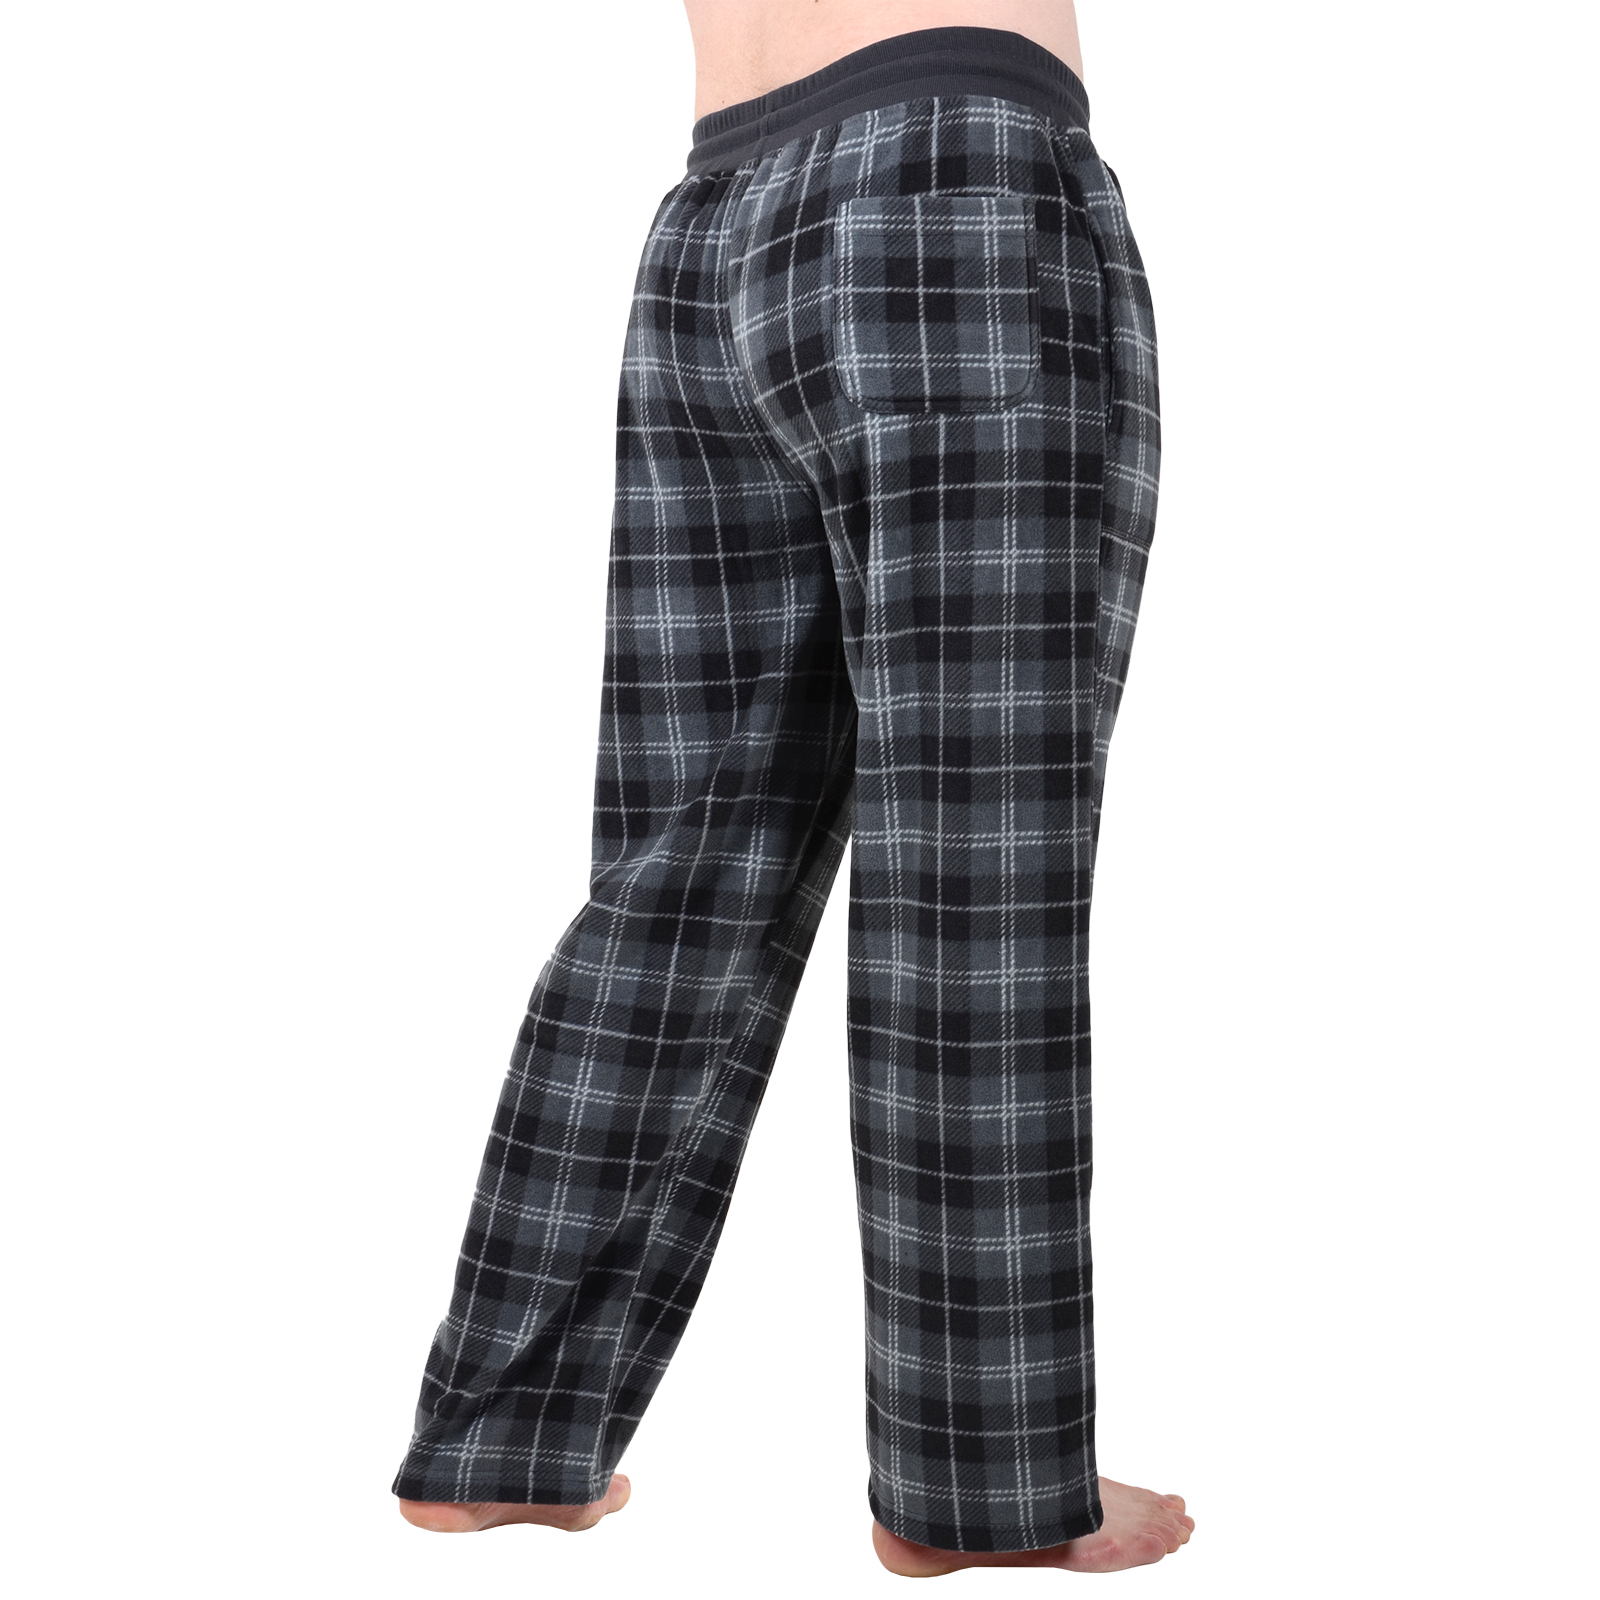 Womens Jack Wills Pyjama Bottoms Blue/White And Pink Check And Bag Size 8 Only worn a few times as they come up bigger for a size 8 The bag is unused Very Good Condition Smoke Free Home Happy Bidding Mens Nightwear Pyjama Checked Cotton WARM Flannel Trousers Bottoms M L XL XXL.